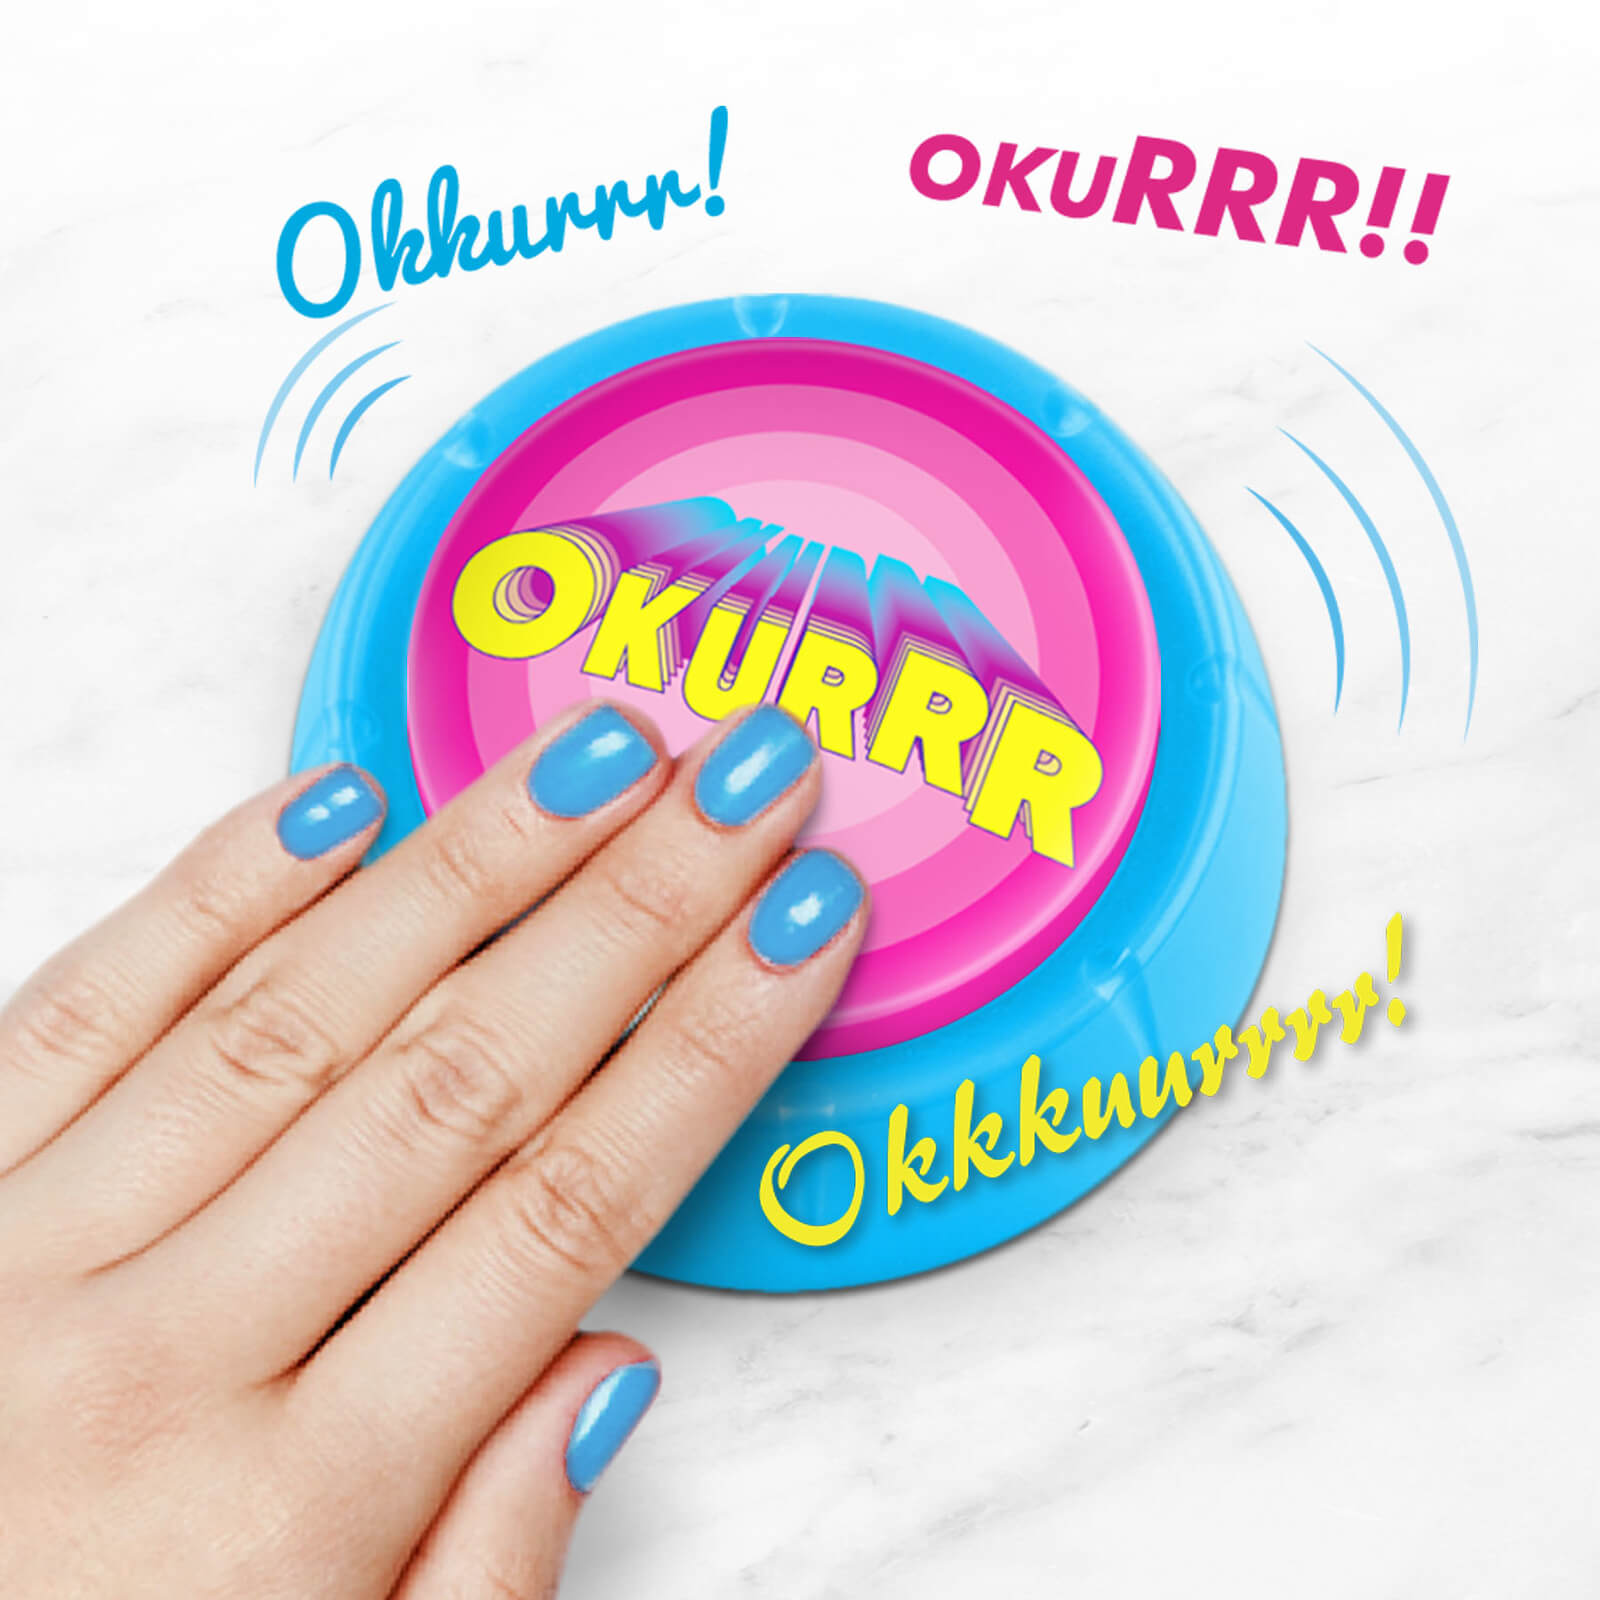 Image of Okurrr Sound Button